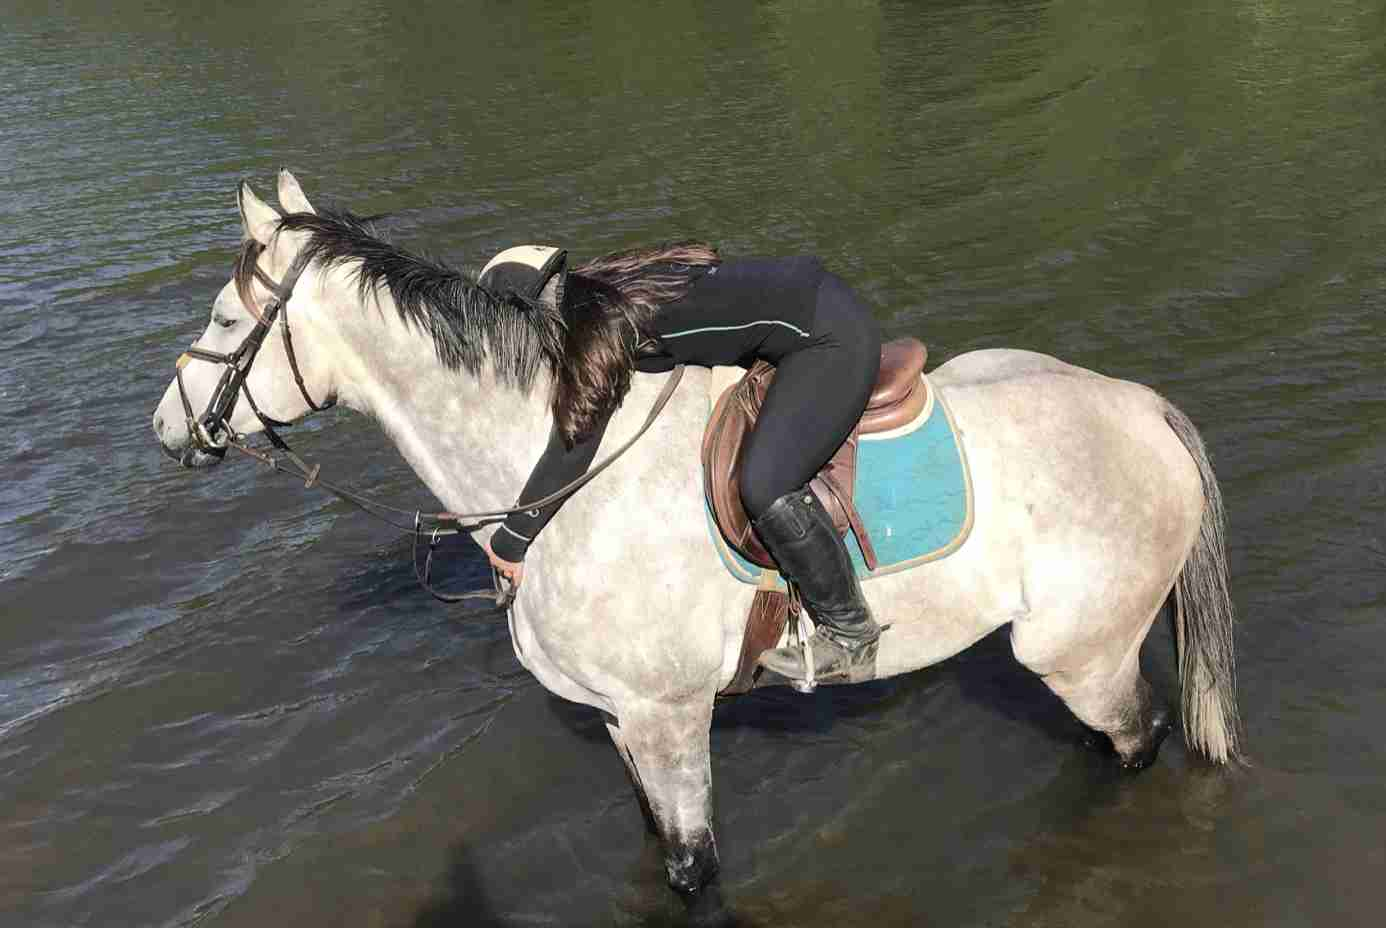 Olive Scaff horse 4h monmouth county nj